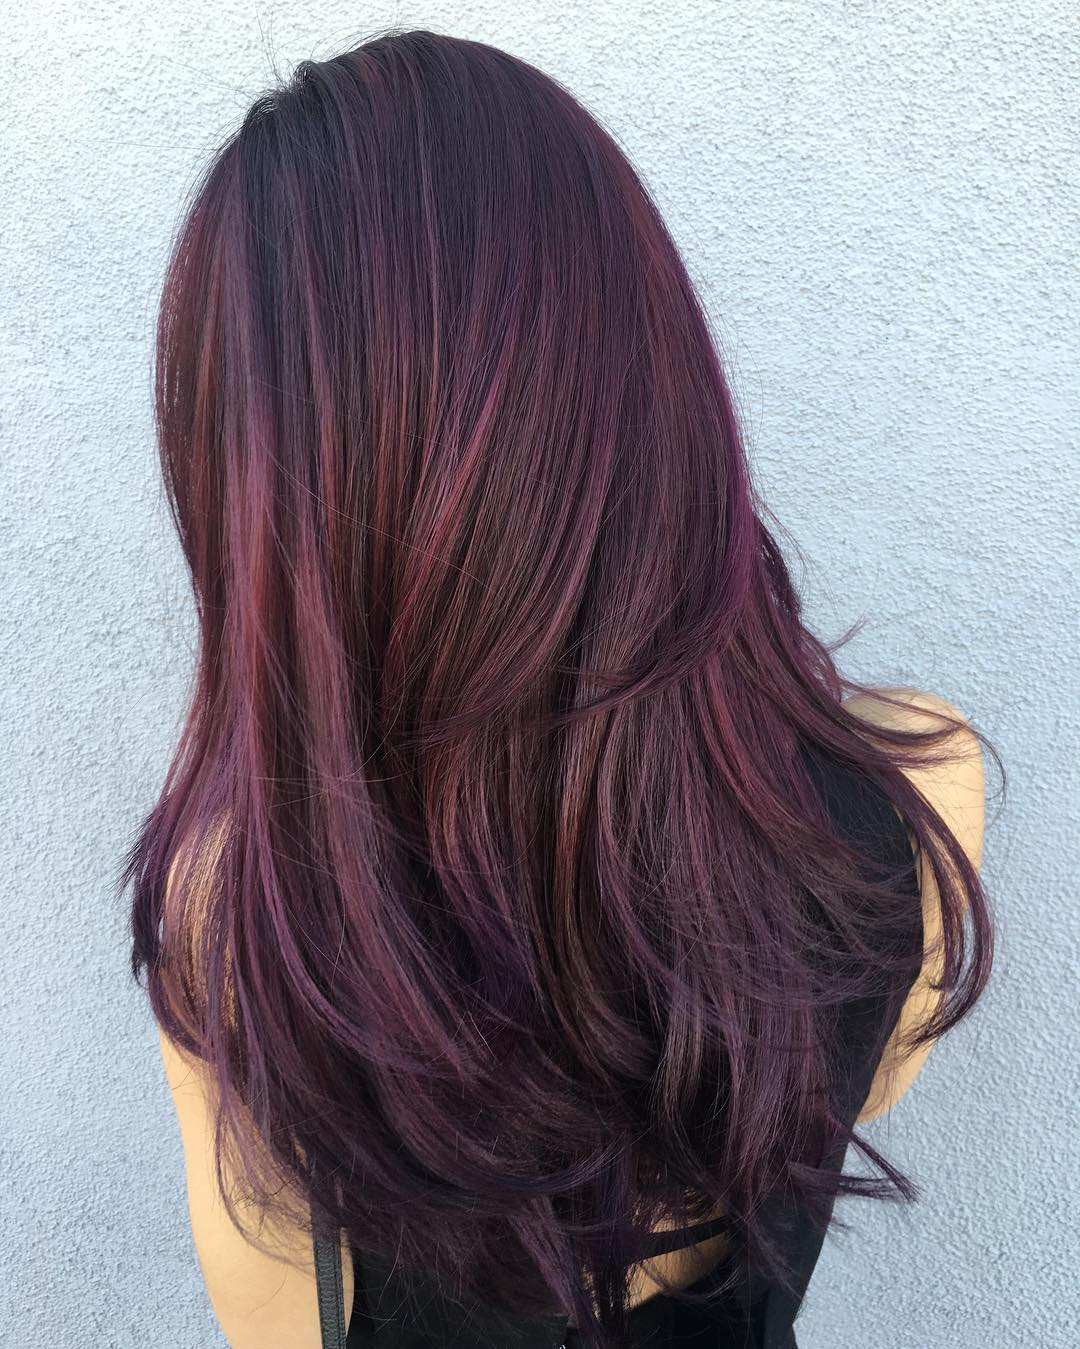 Fashion style Hair Black with red tones for lady